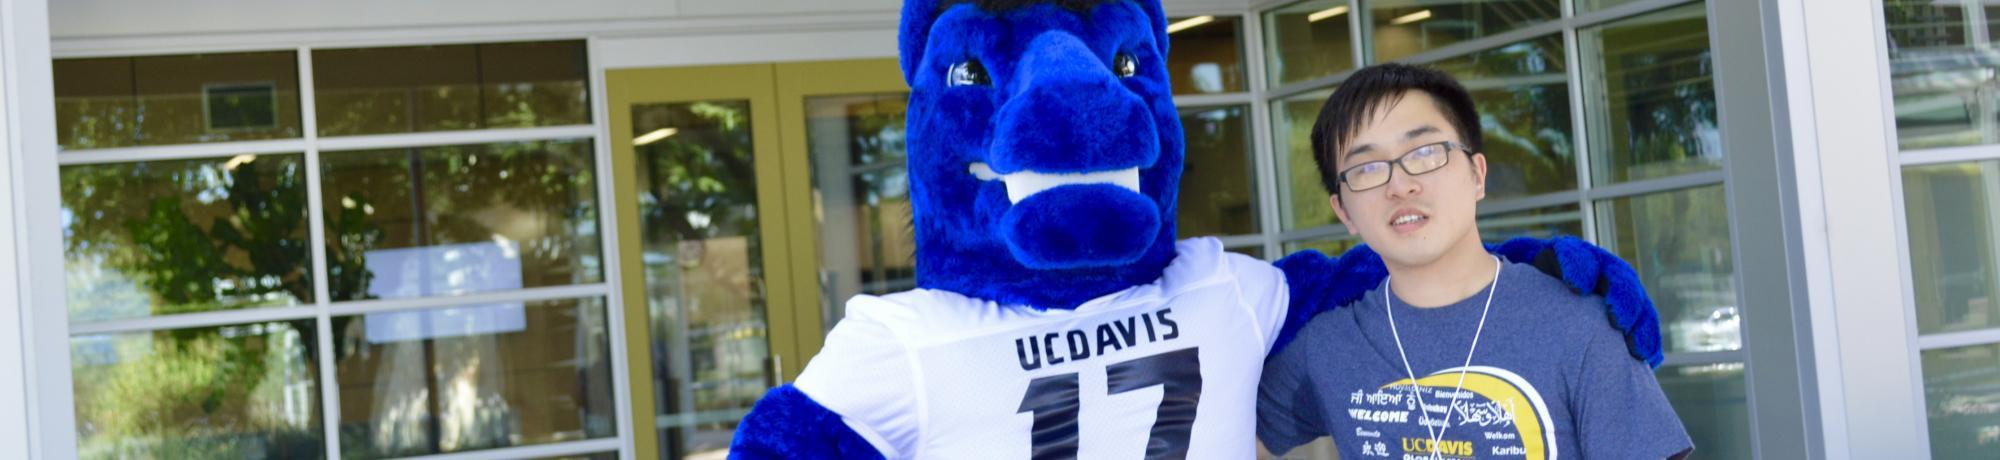 International student with UC Davis mascot